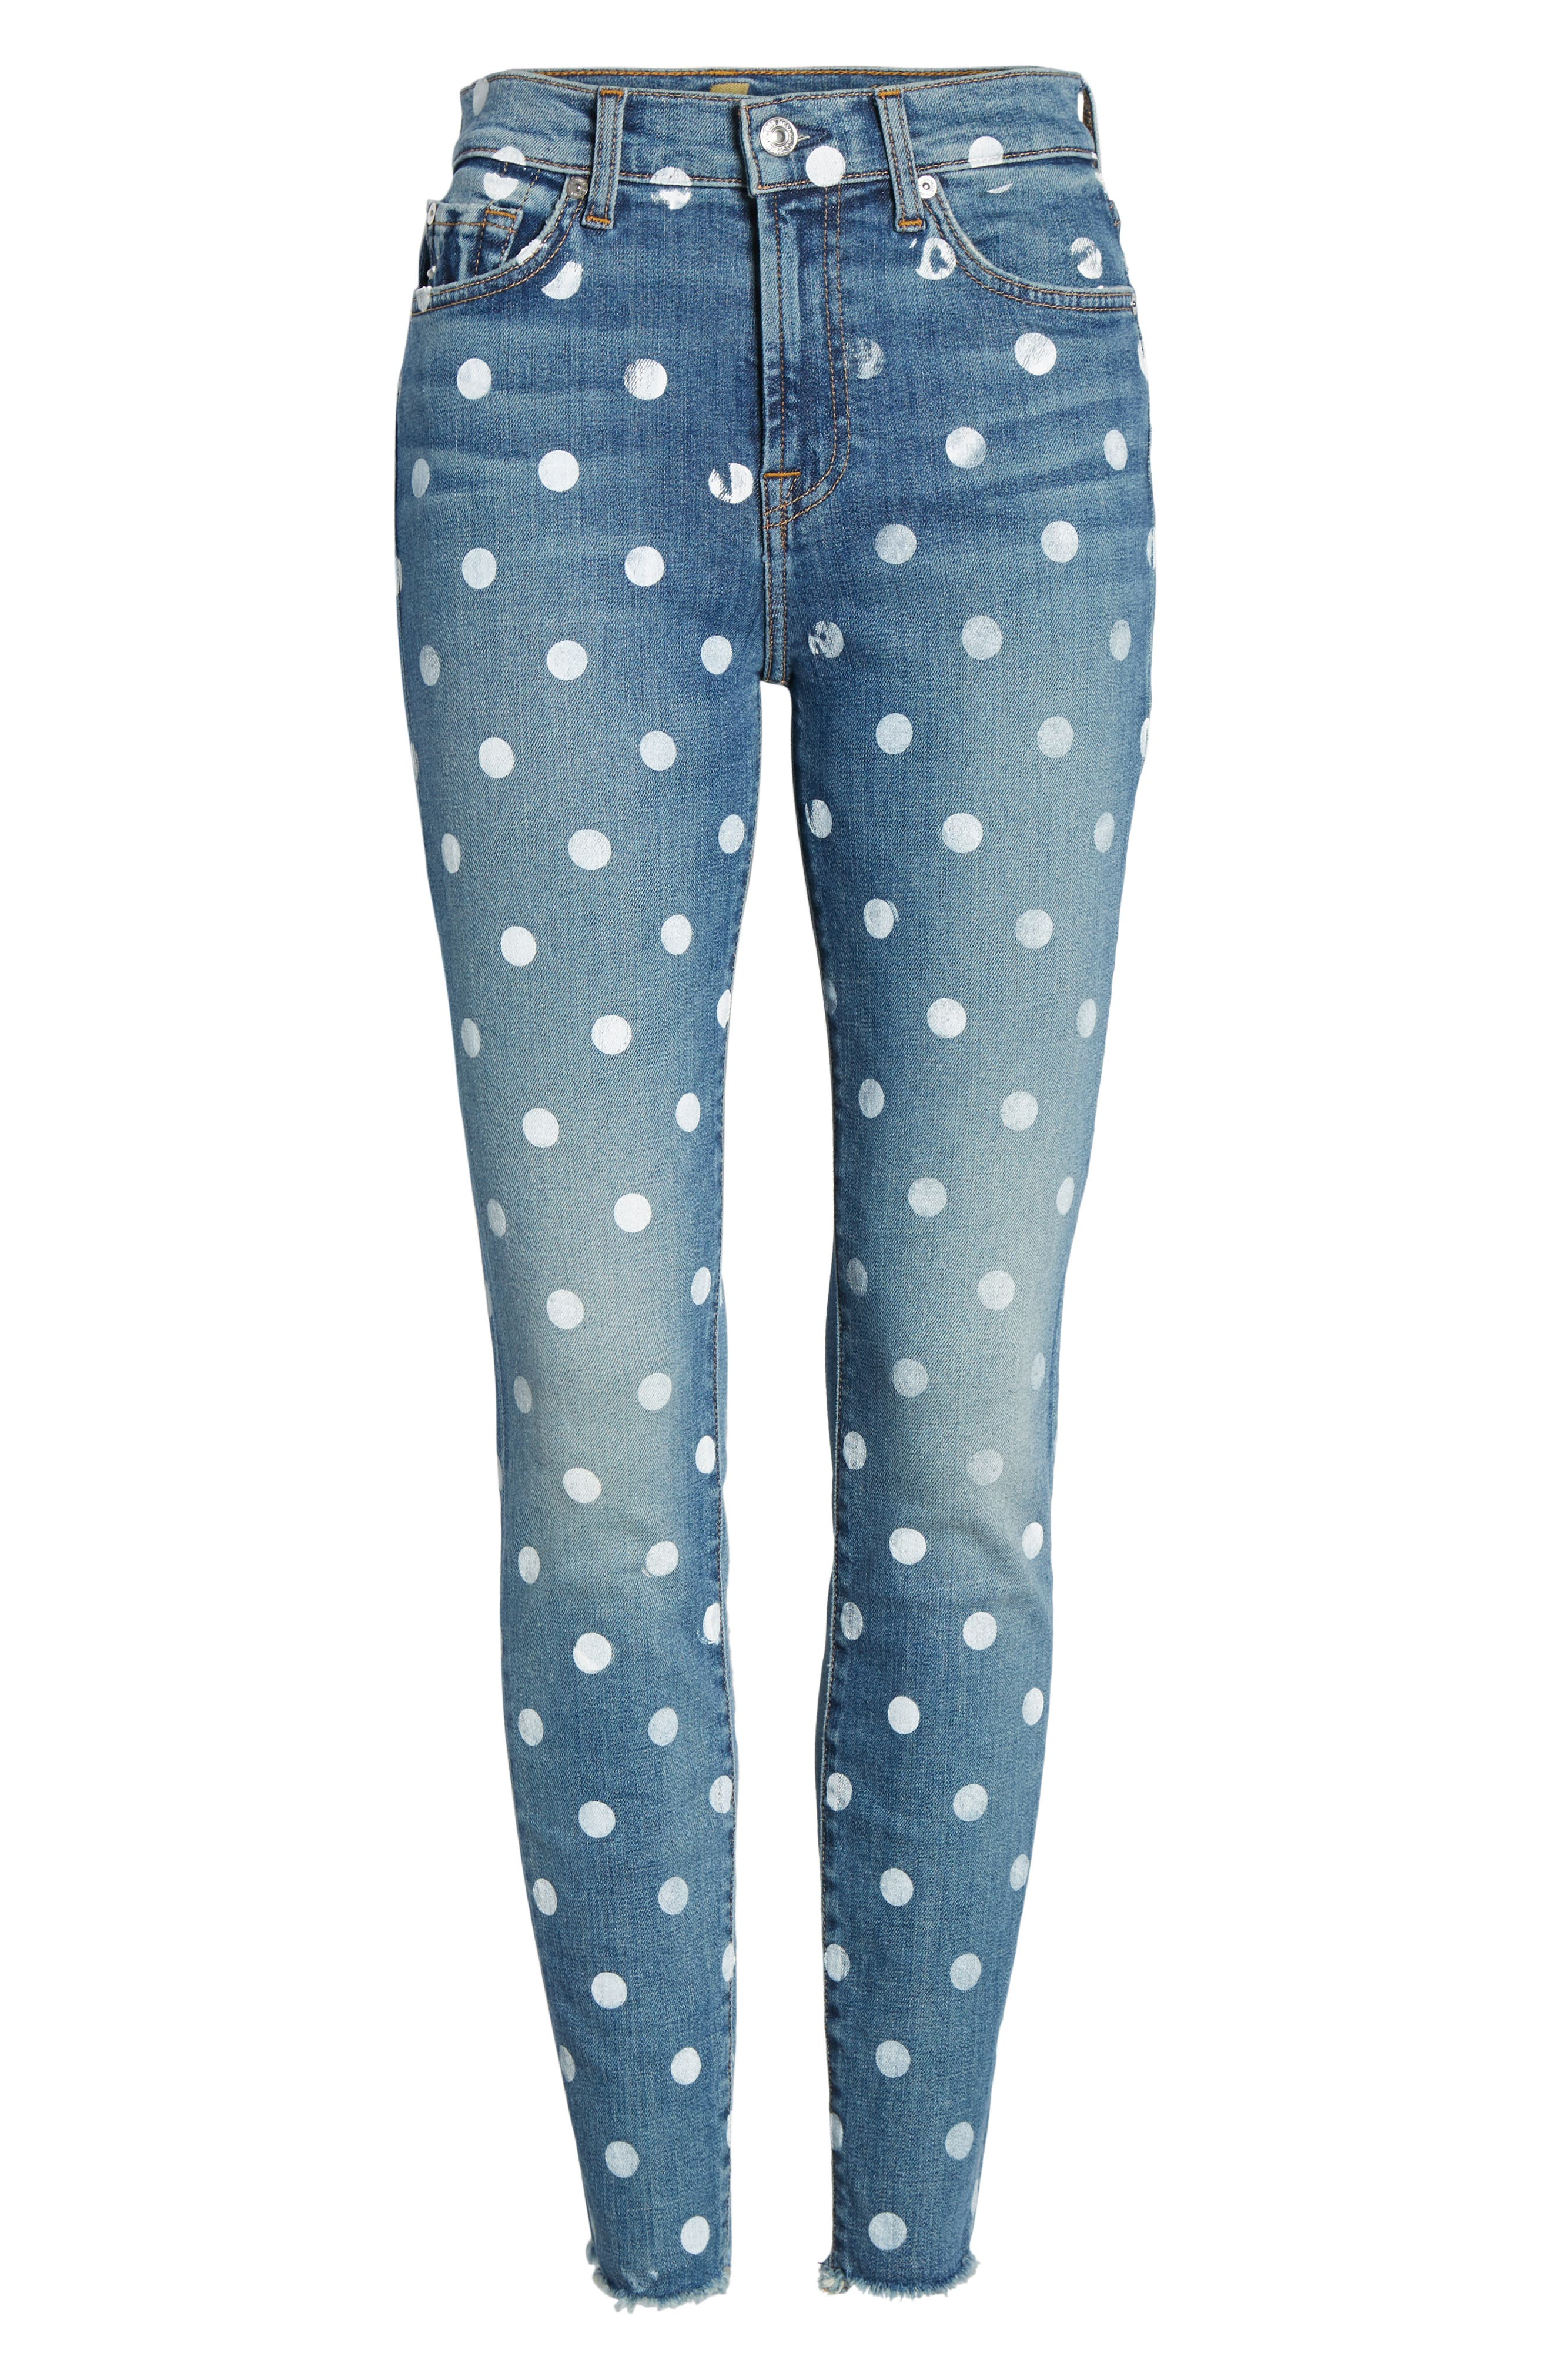 7 FOR ALL MANKIND<SUP>®</SUP>, Polka Dot High Waist Ankle Skinny Jeans, Alternate thumbnail 7, color, RIDGEMONT VINTAGE